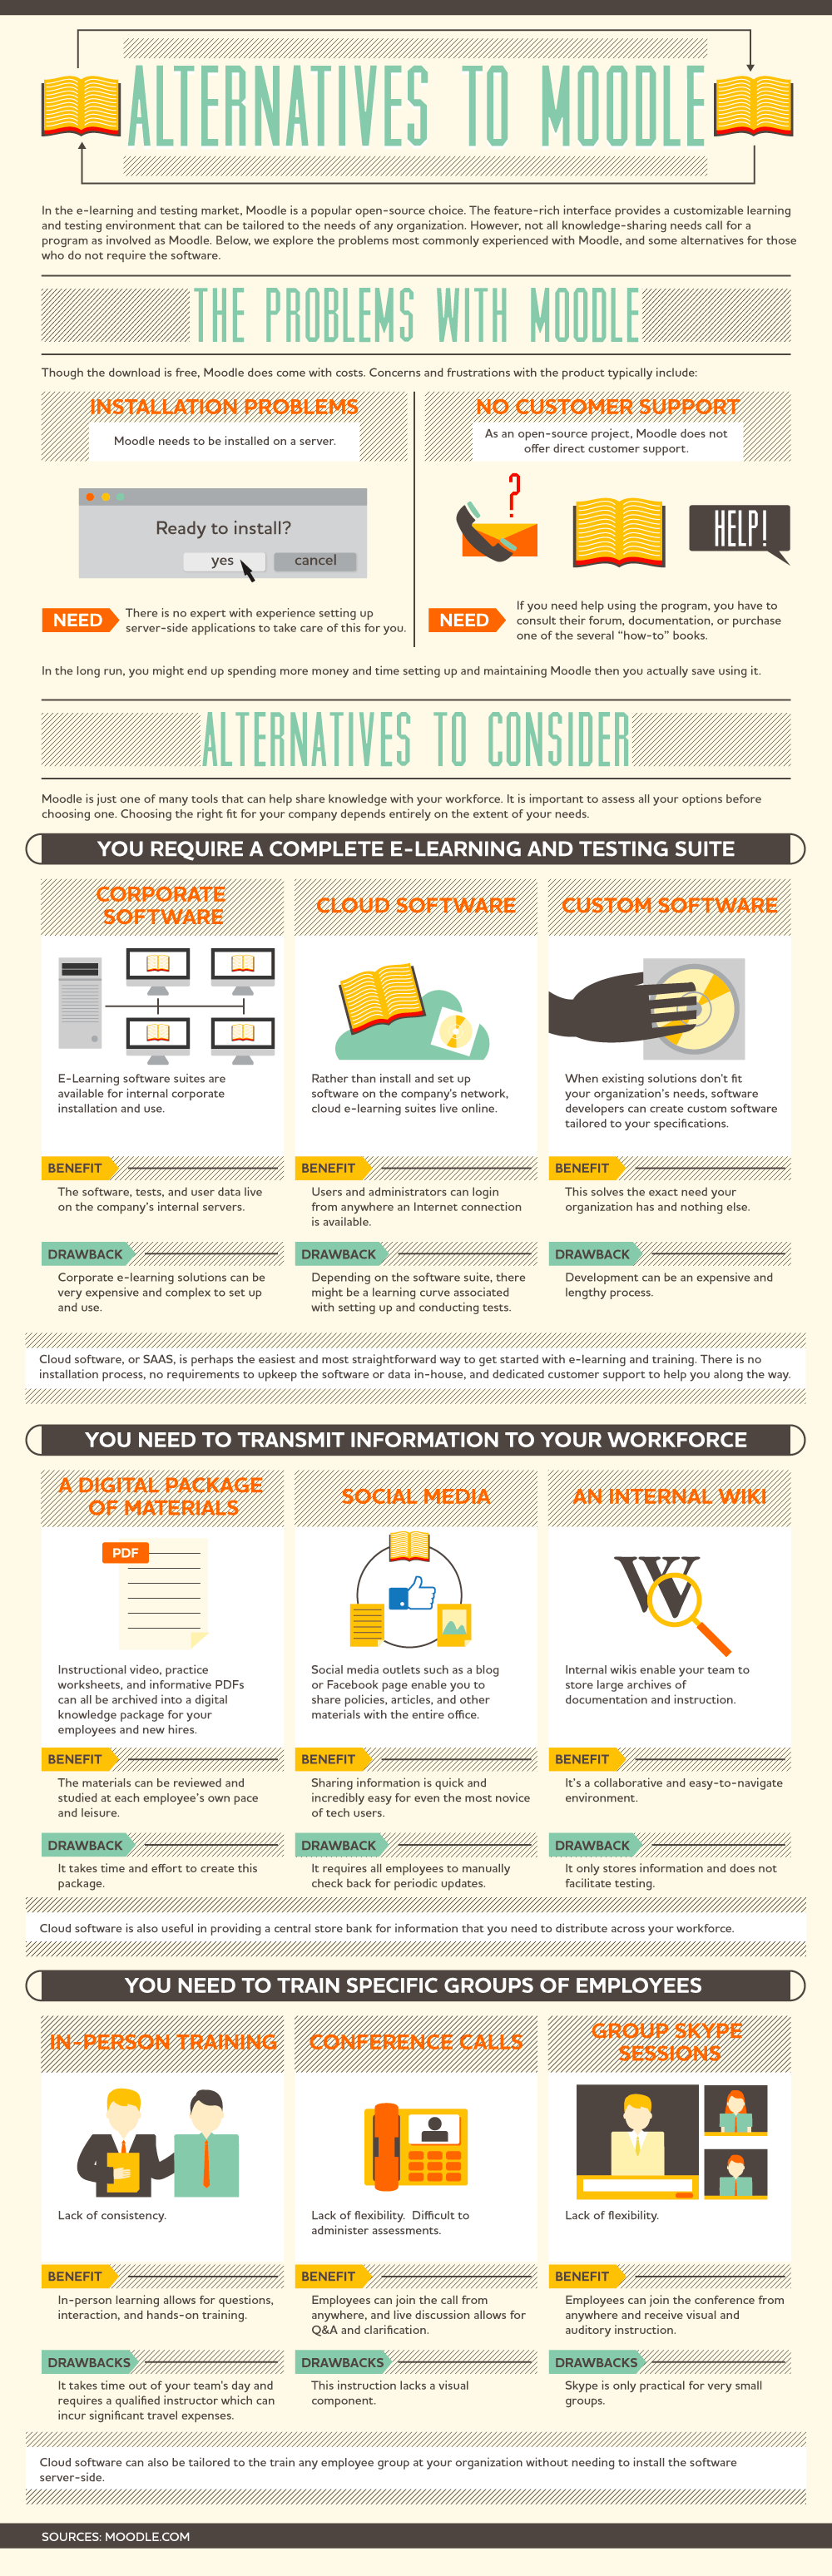 Alternatives to Moodle LMS Infographic